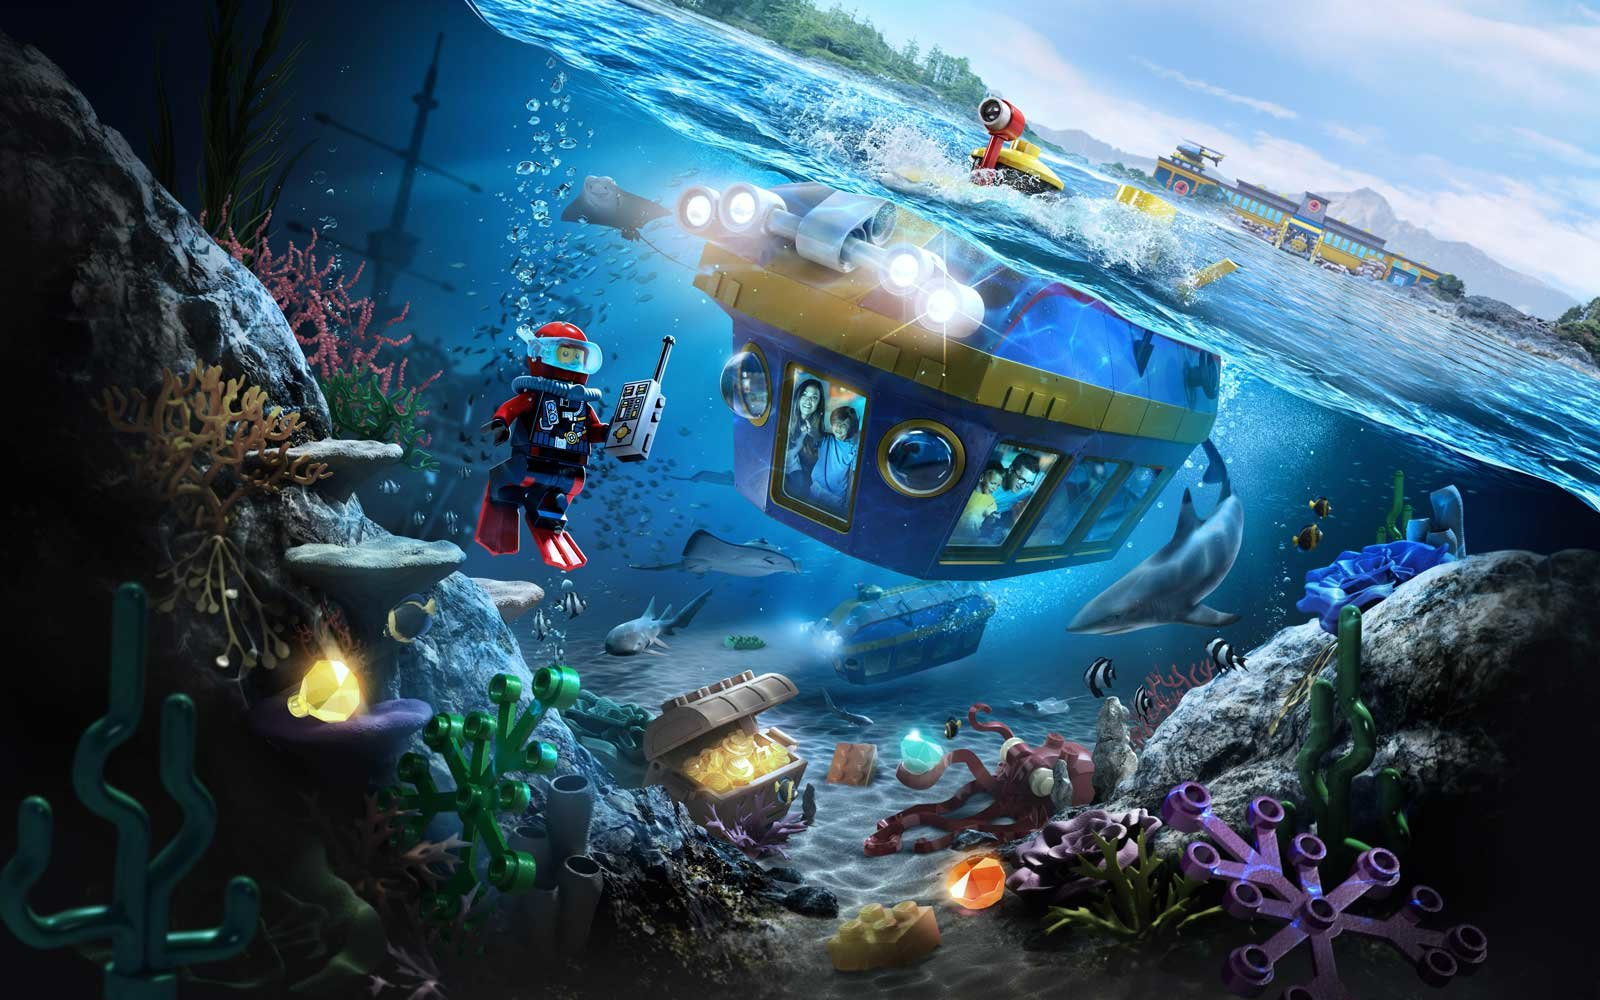 Concept drawing of the Lego Deep Sea Adventure ride coming to Legoland California in 2018